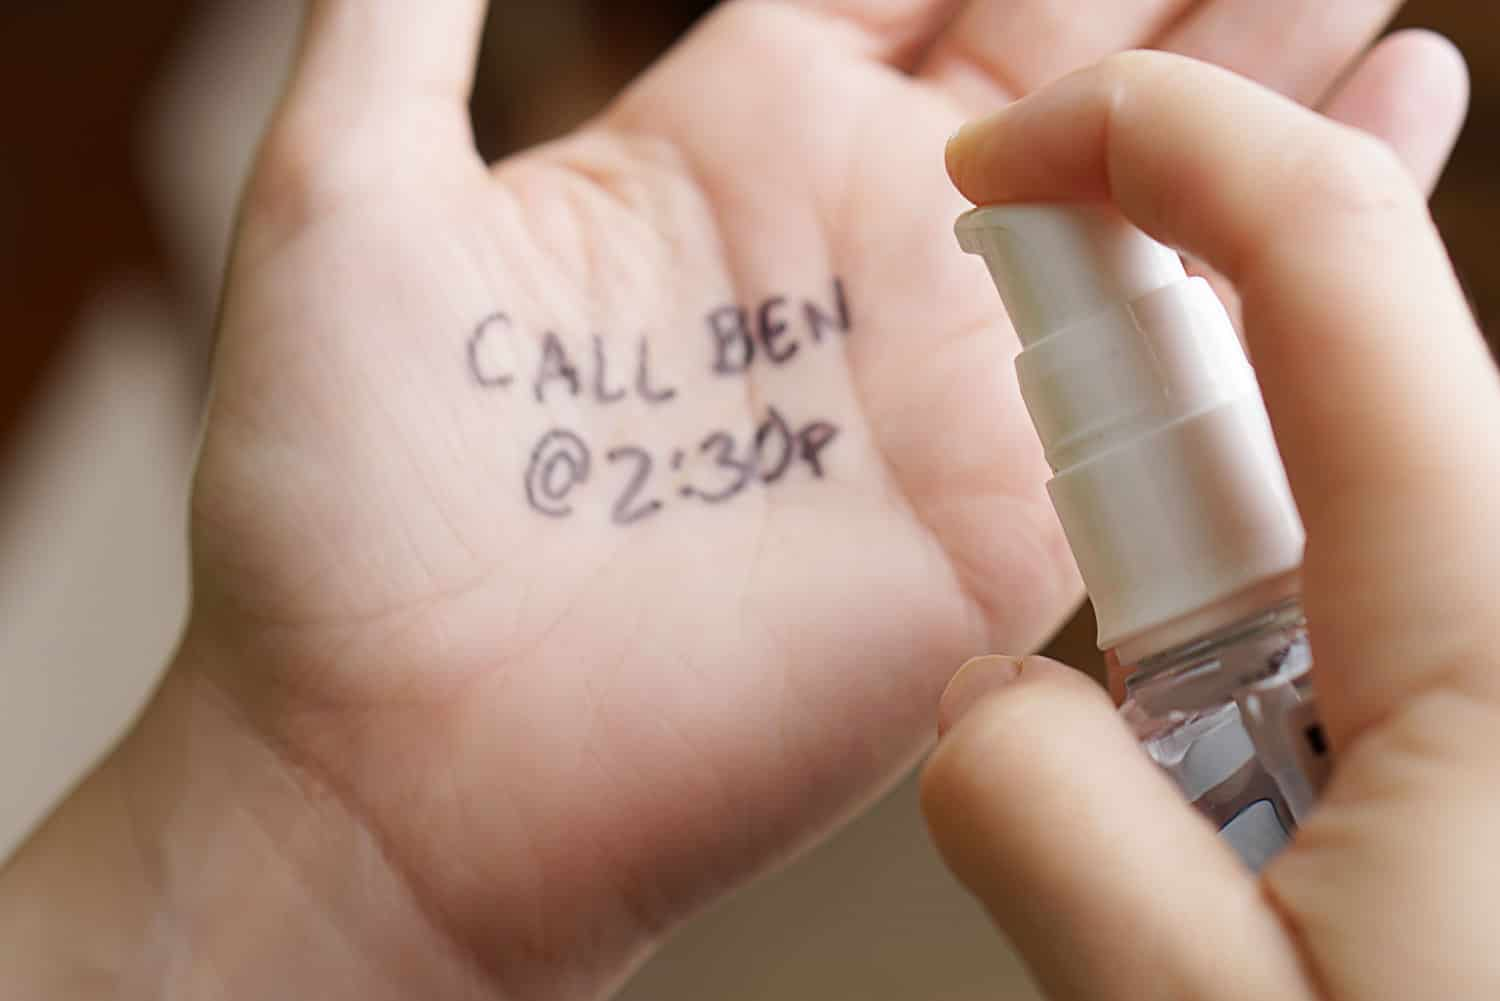 using hand sanitizer to remove permanent marker from hand